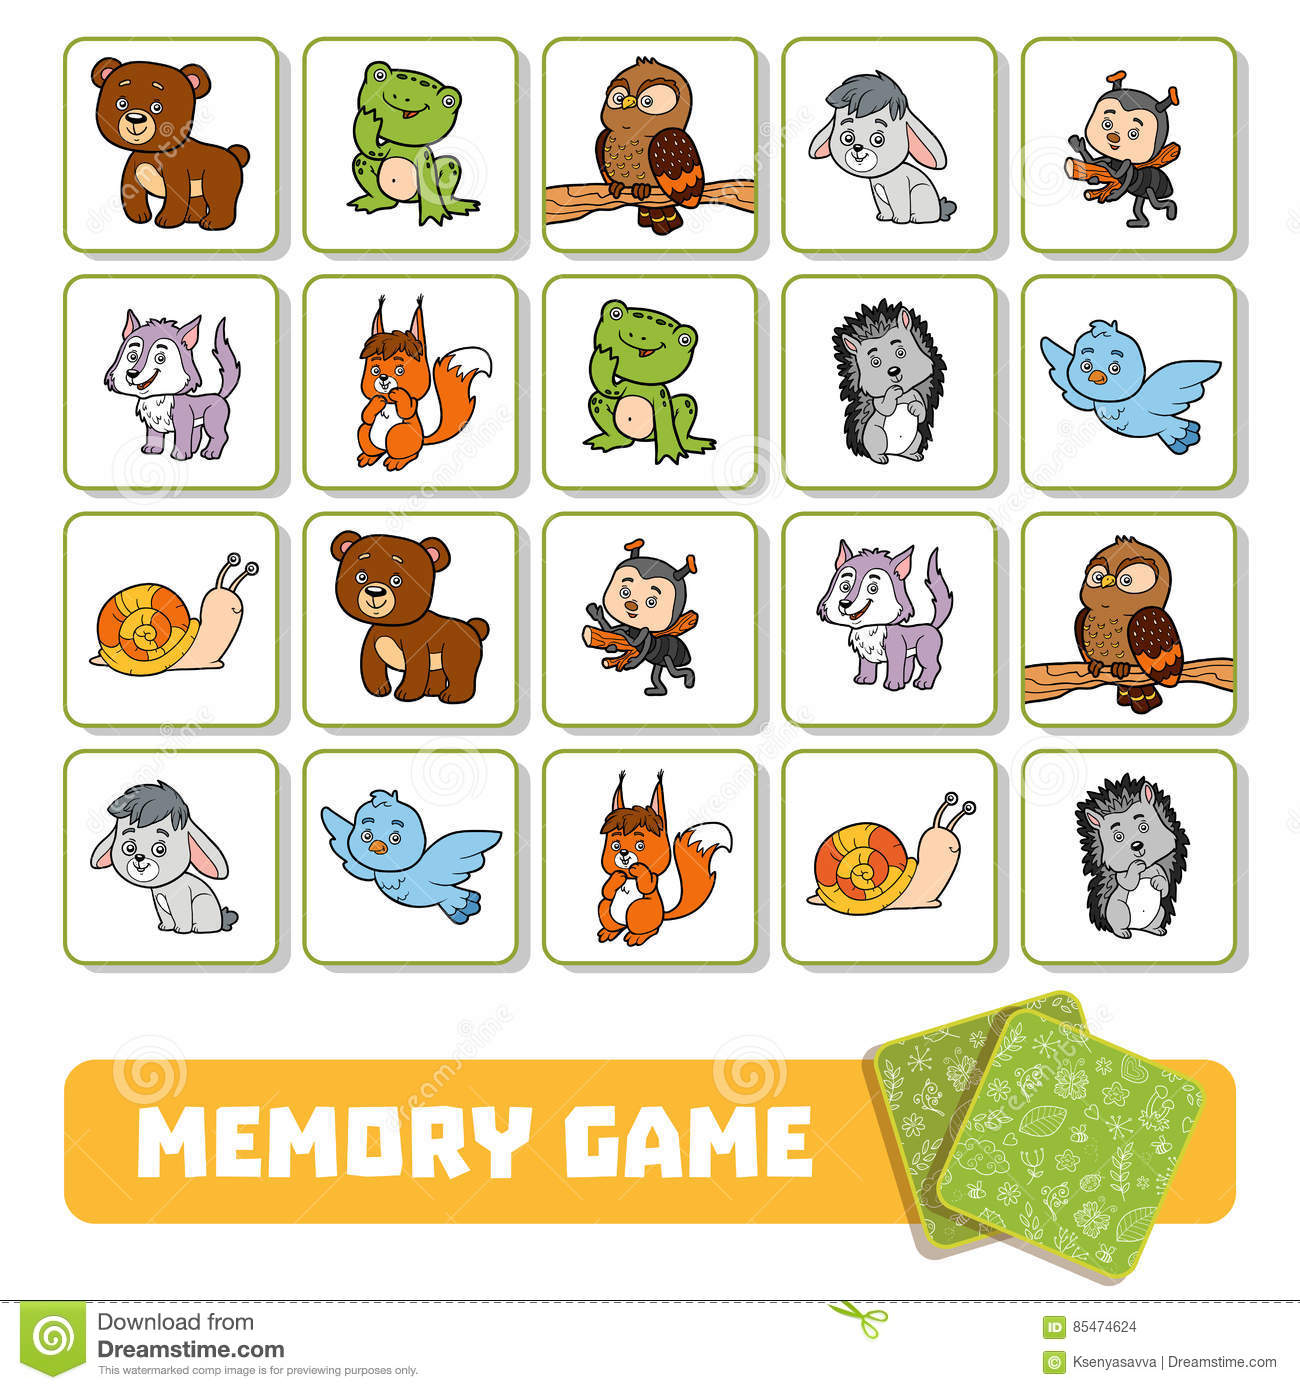 Free Worksheets more or less worksheets preschool : Memory Game For Children, Cards With Forest Animals Stock ...